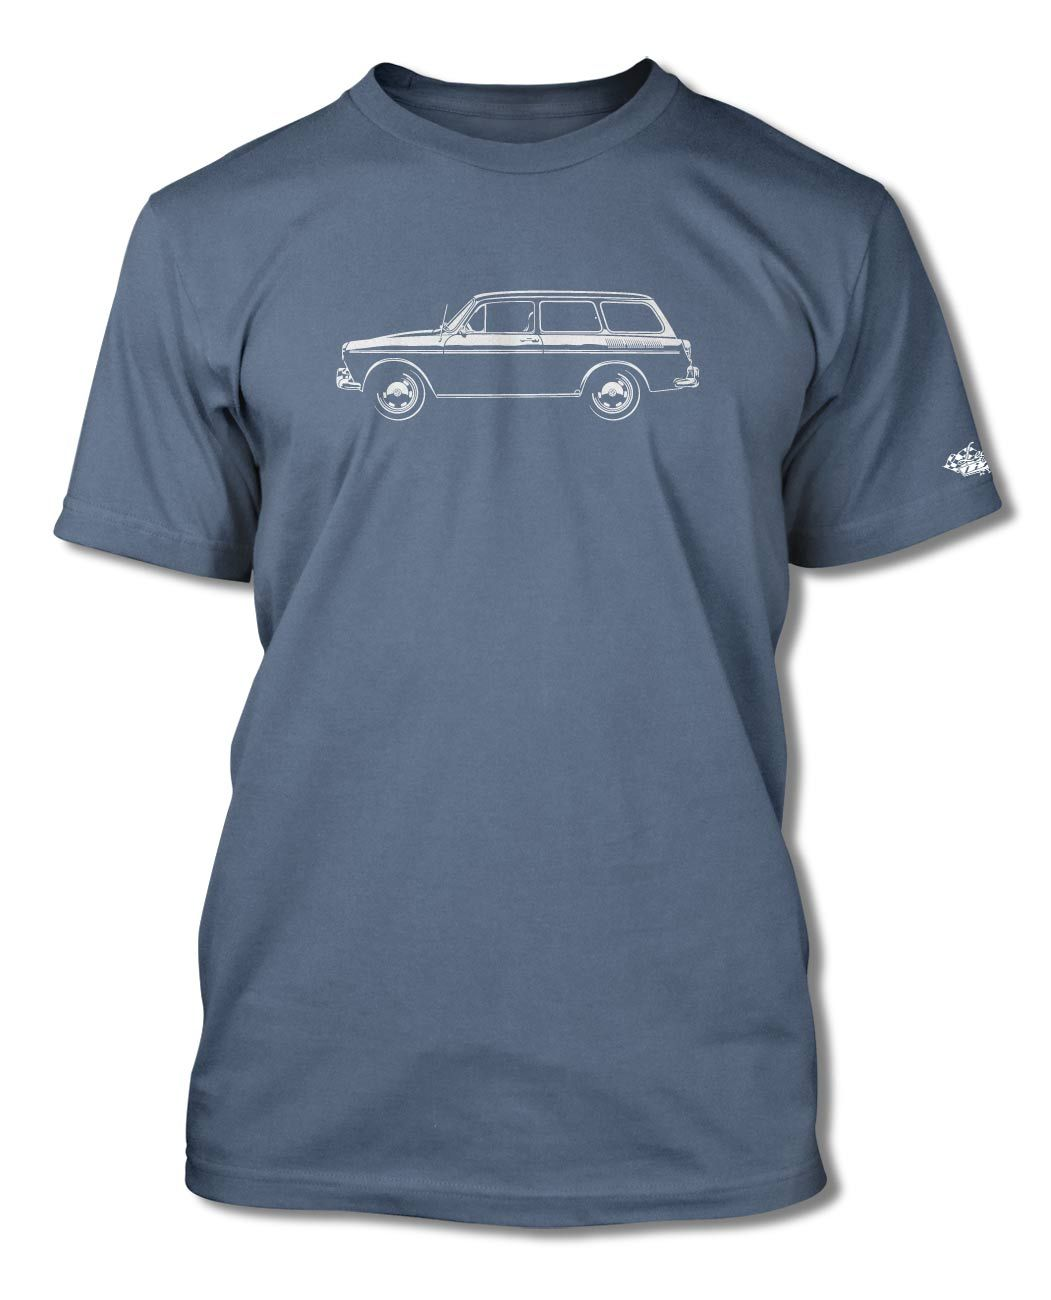 Volkswagen Type 3 Variant Squareback 1961 – 1973 T-Shirt for Men The Volkswagen Type 3 was a compact car manufactured from 1961 to 1973. Introduced in the 1961, the Type 3 was marketed as the Volkswagen 1500 and later the Volkswagen 1600, in three body styles: two-door Notchback, Fastback and Variant station wagon, the latter marketed as the Squareback, The Type 3 diversified Volkswagen's product range beyond the existing models while retaining their engineering principles, notably the air-coole